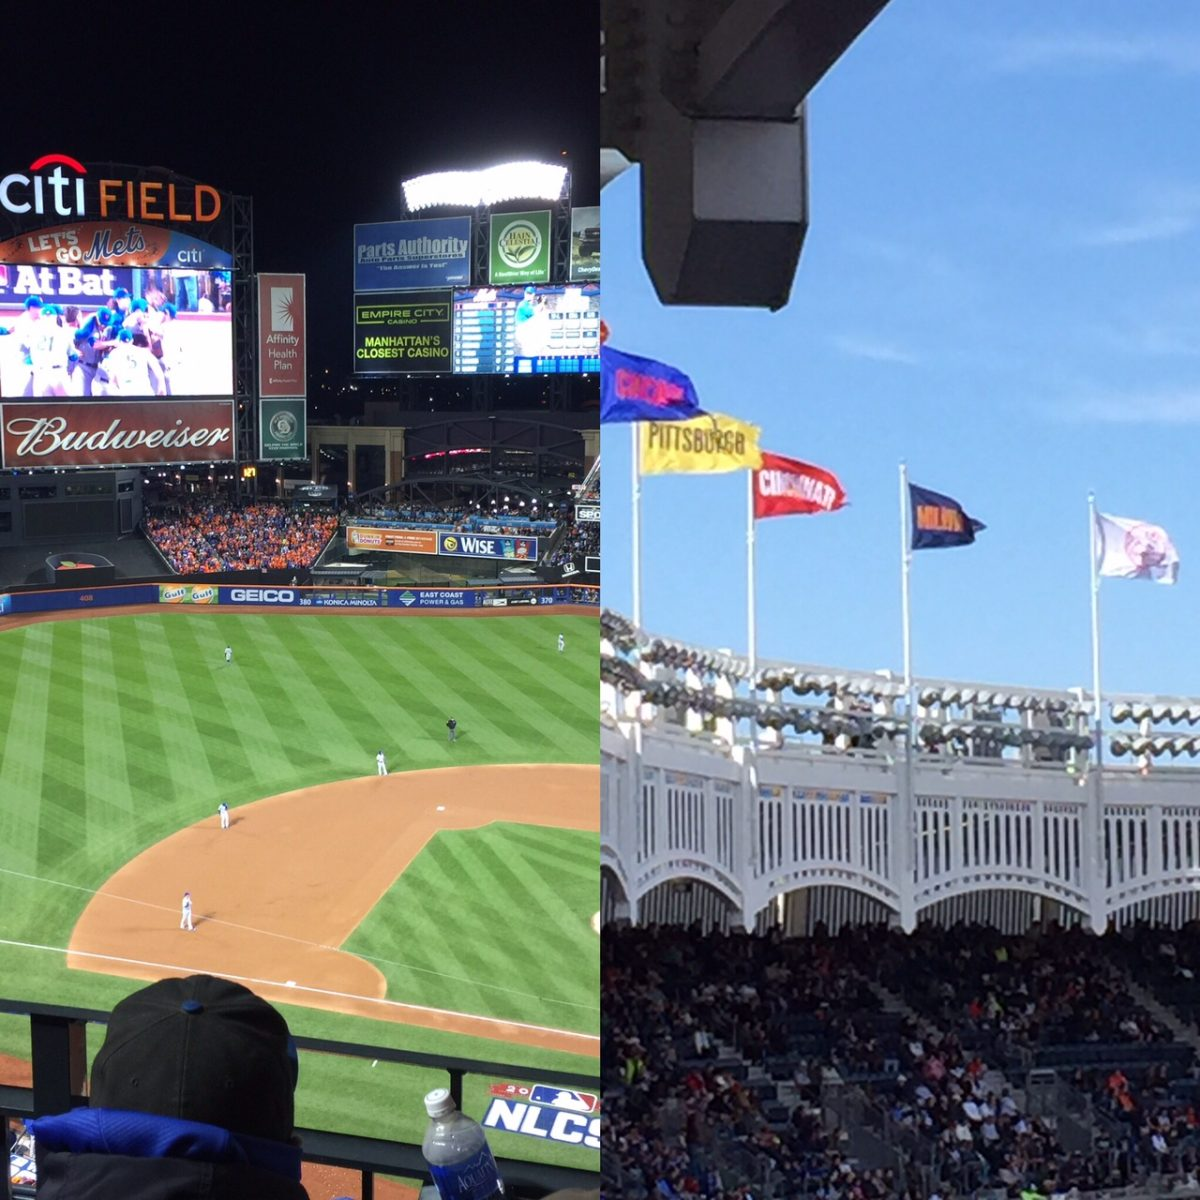 Professional Baseball in the City